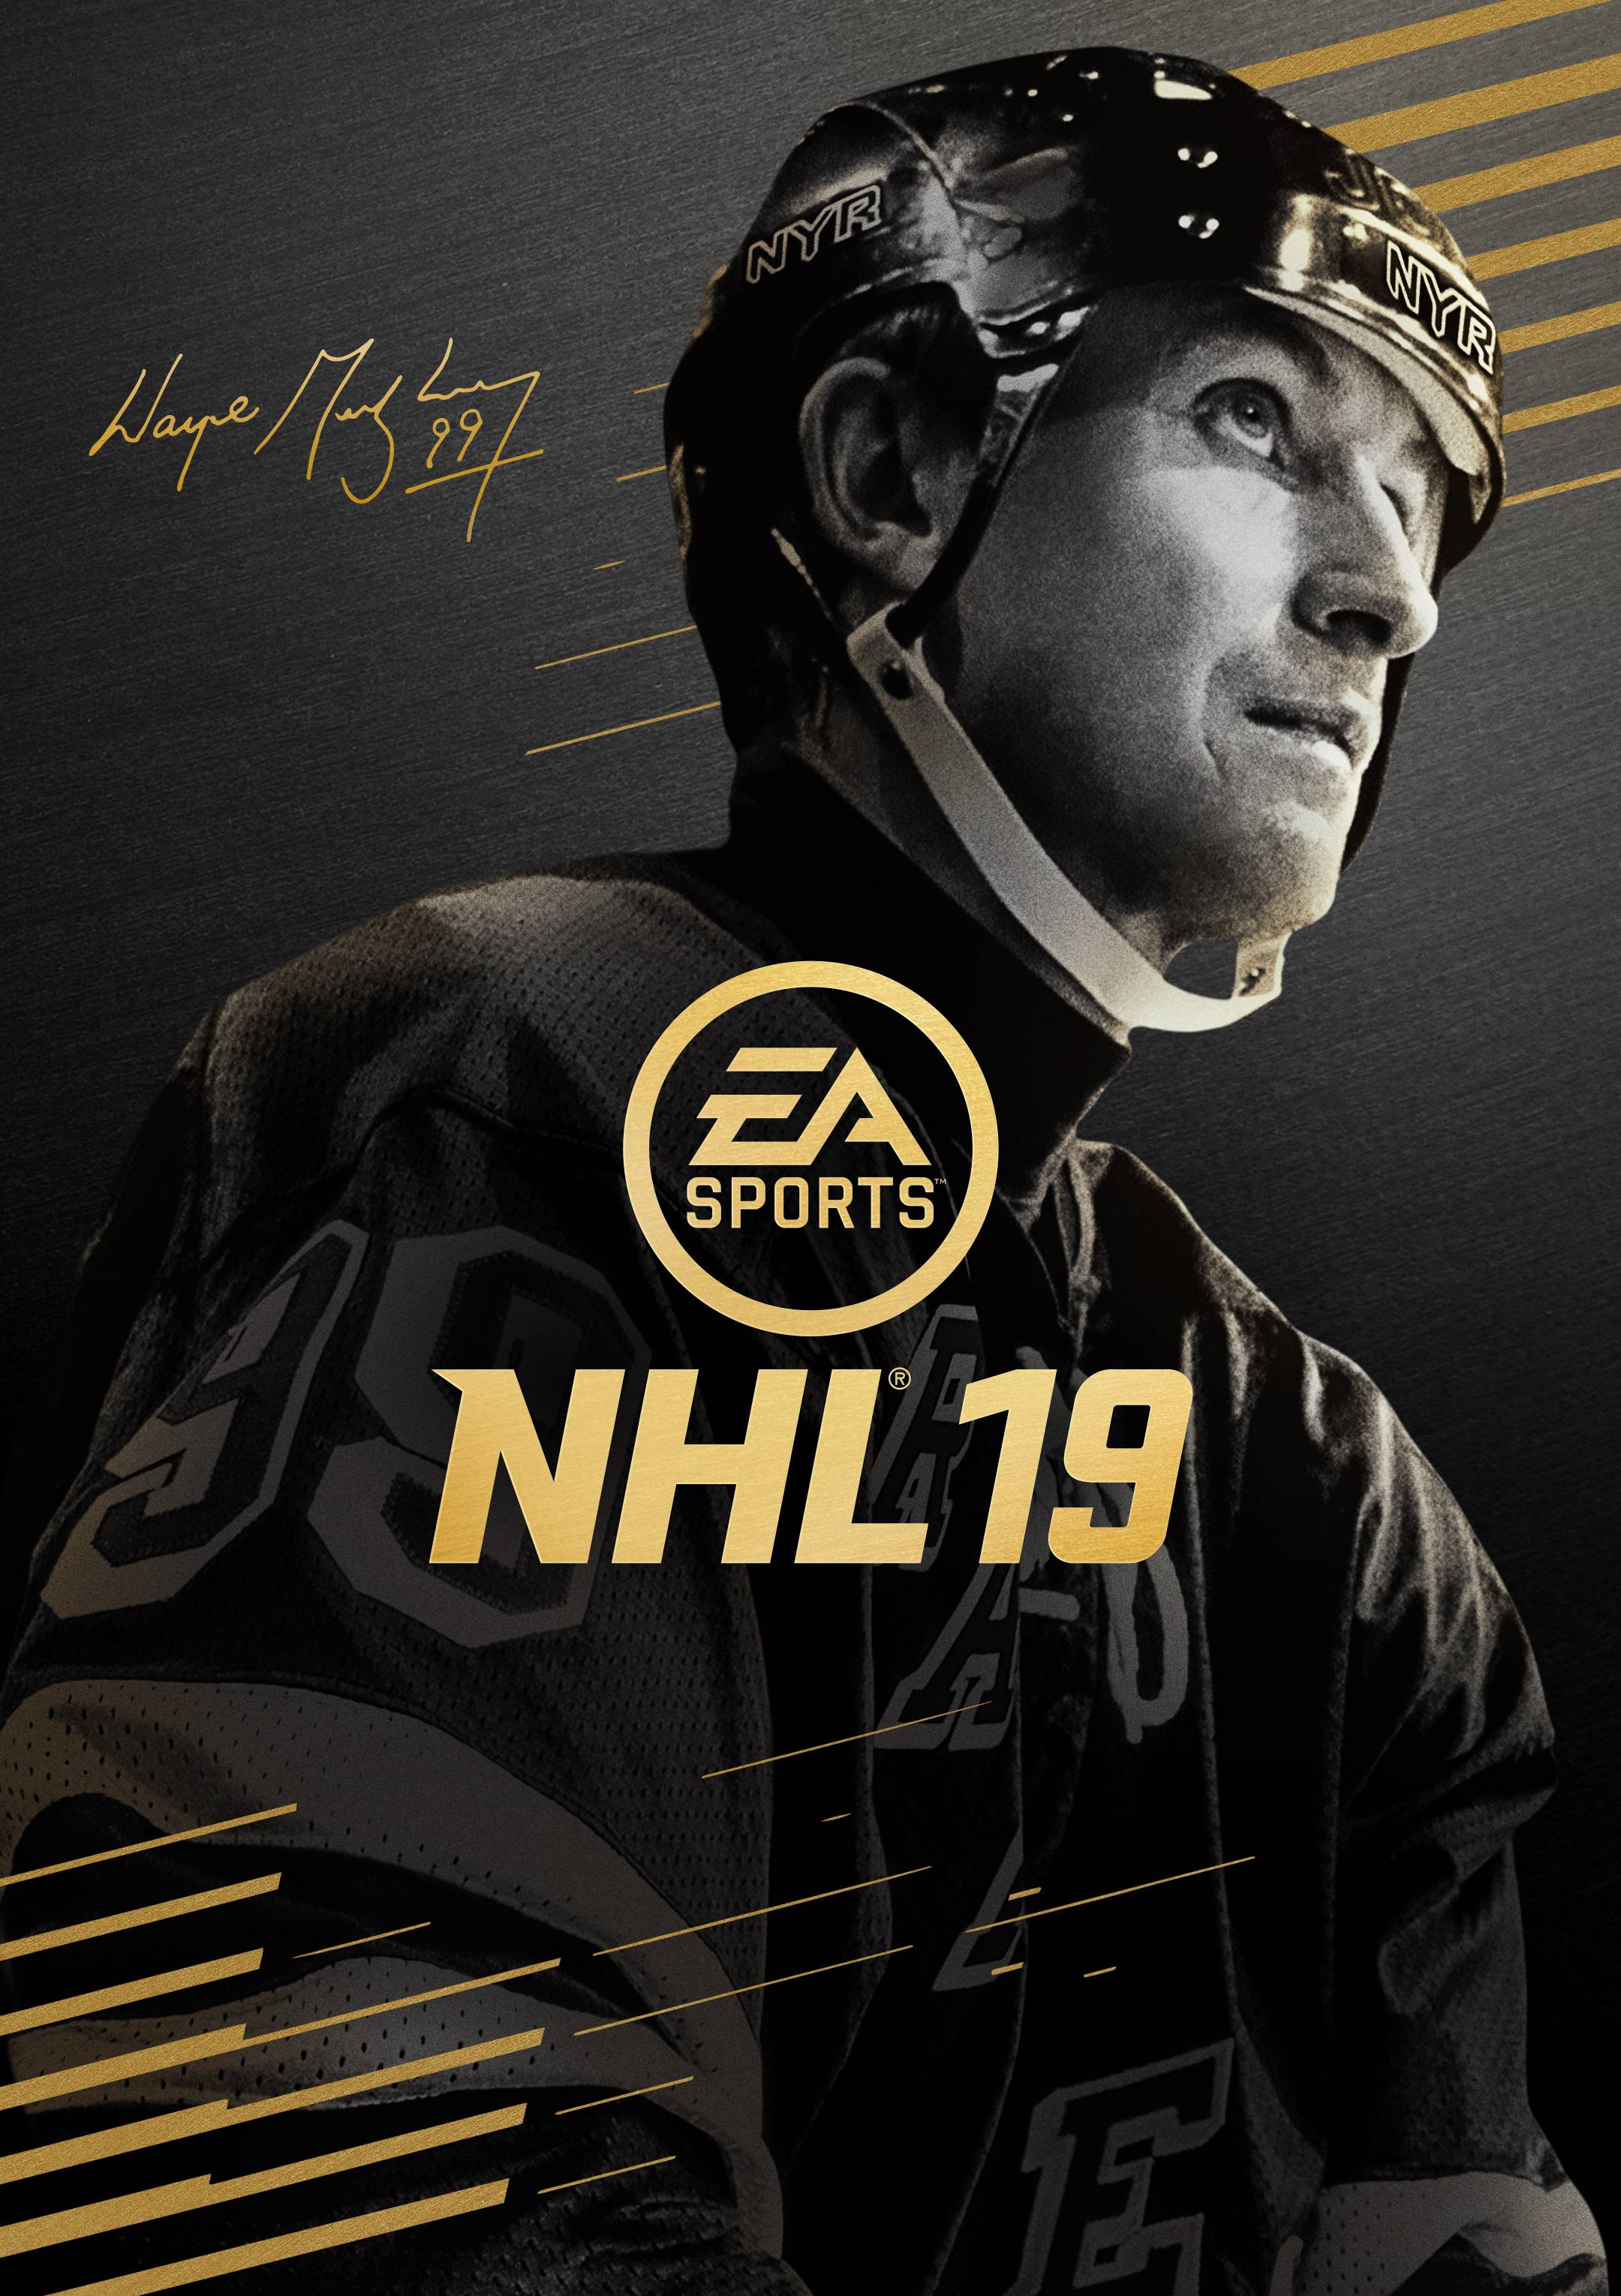 964a2449e EA SPORTS™ NHL® 19 Honors the Great One with Limited '99 Edition' |  Business Wire